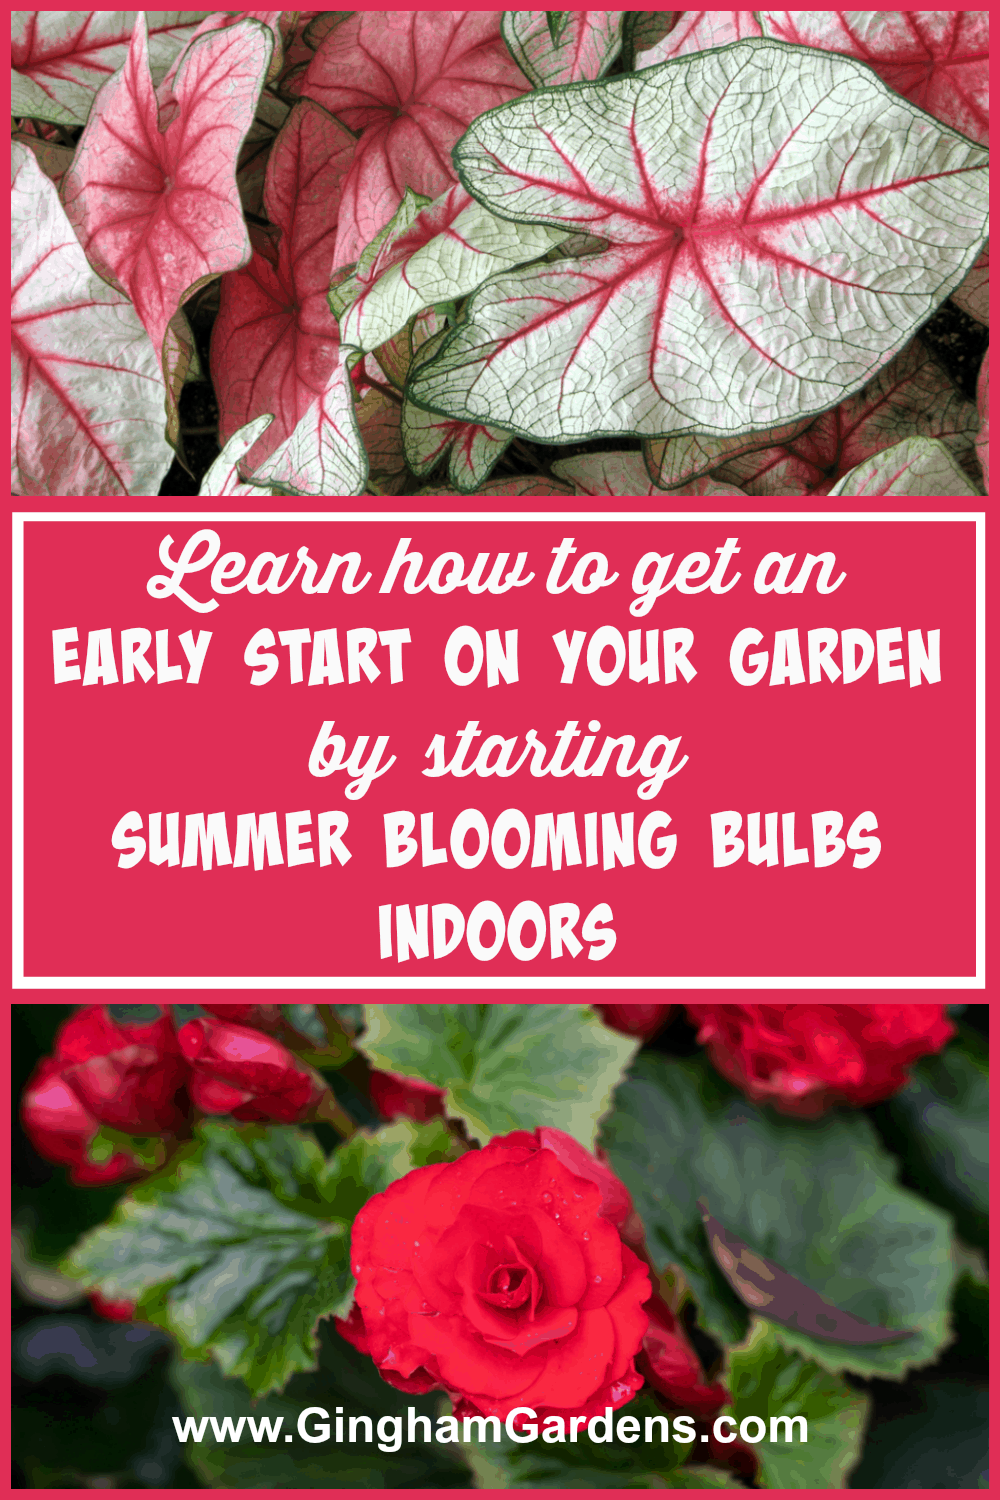 Get an Early Start on Your Garden